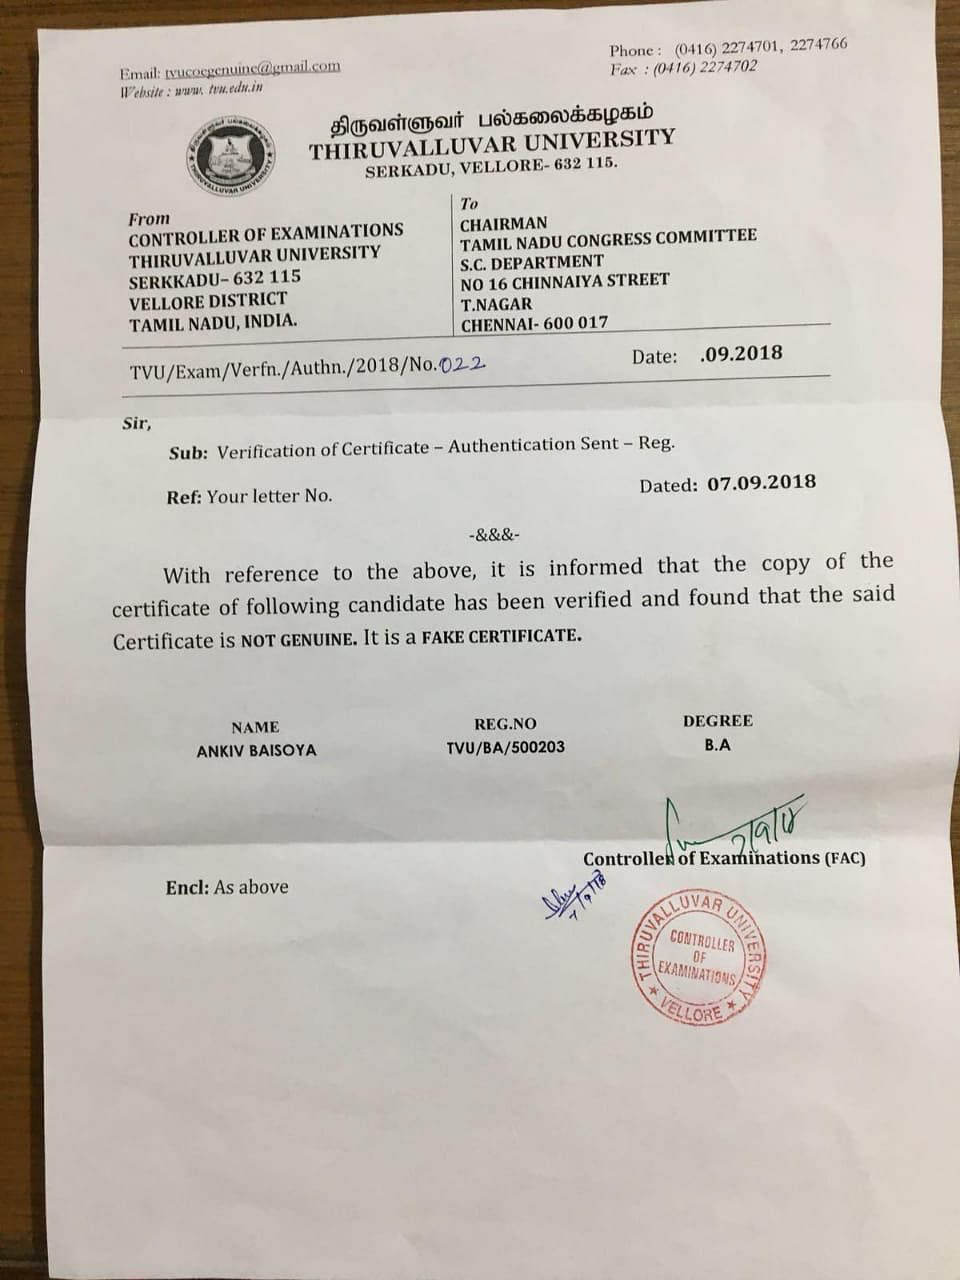 Document presented by NSUI alleging submission of 'fake' certificate by Ankiv Baisoya.